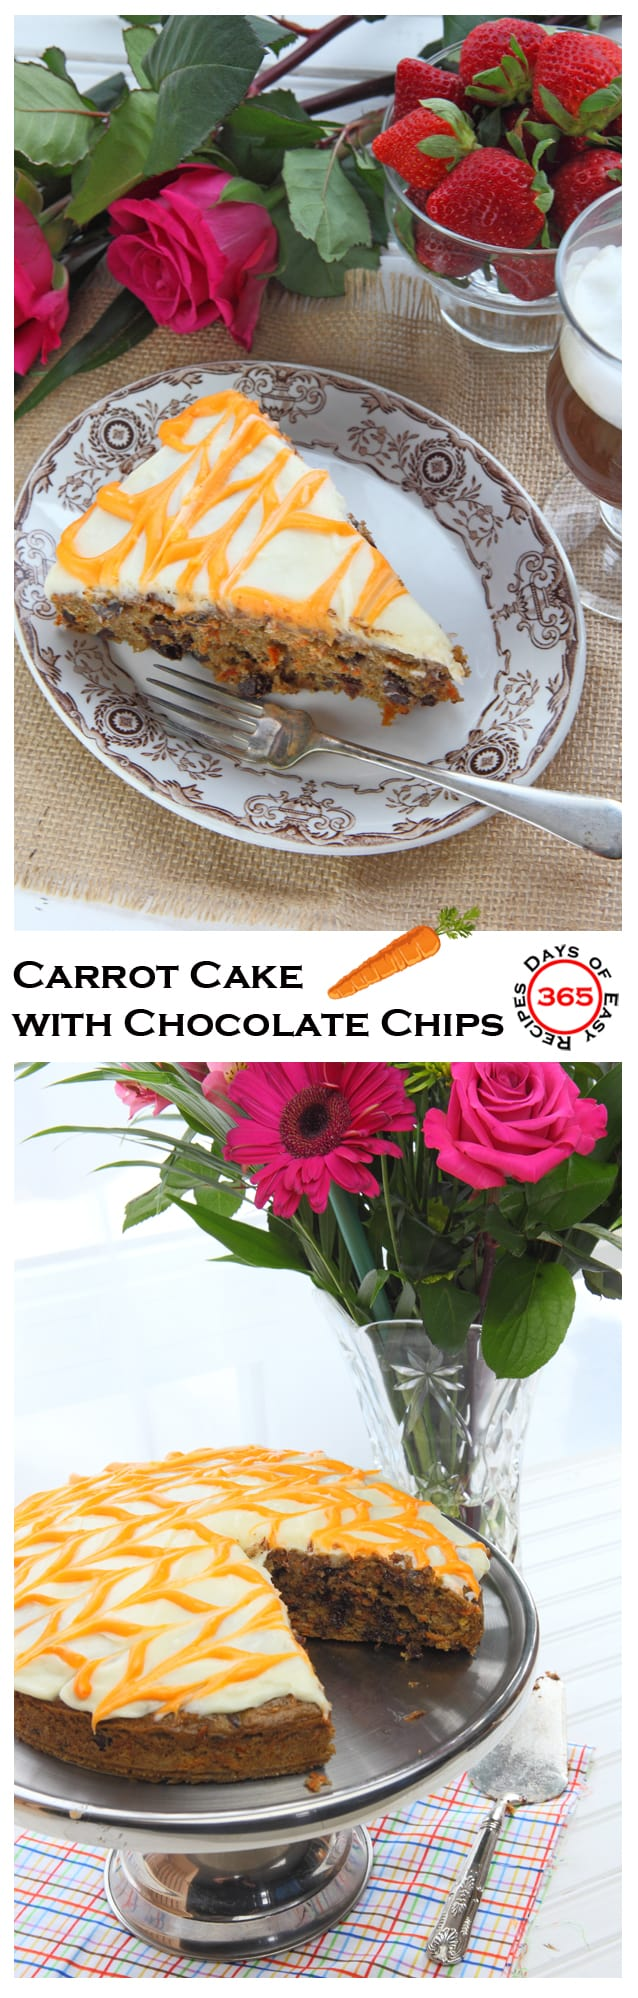 An easy Chocolate Chip Carrot Cake recipe, perfect for Easter | 365 Days of Easy Recipes